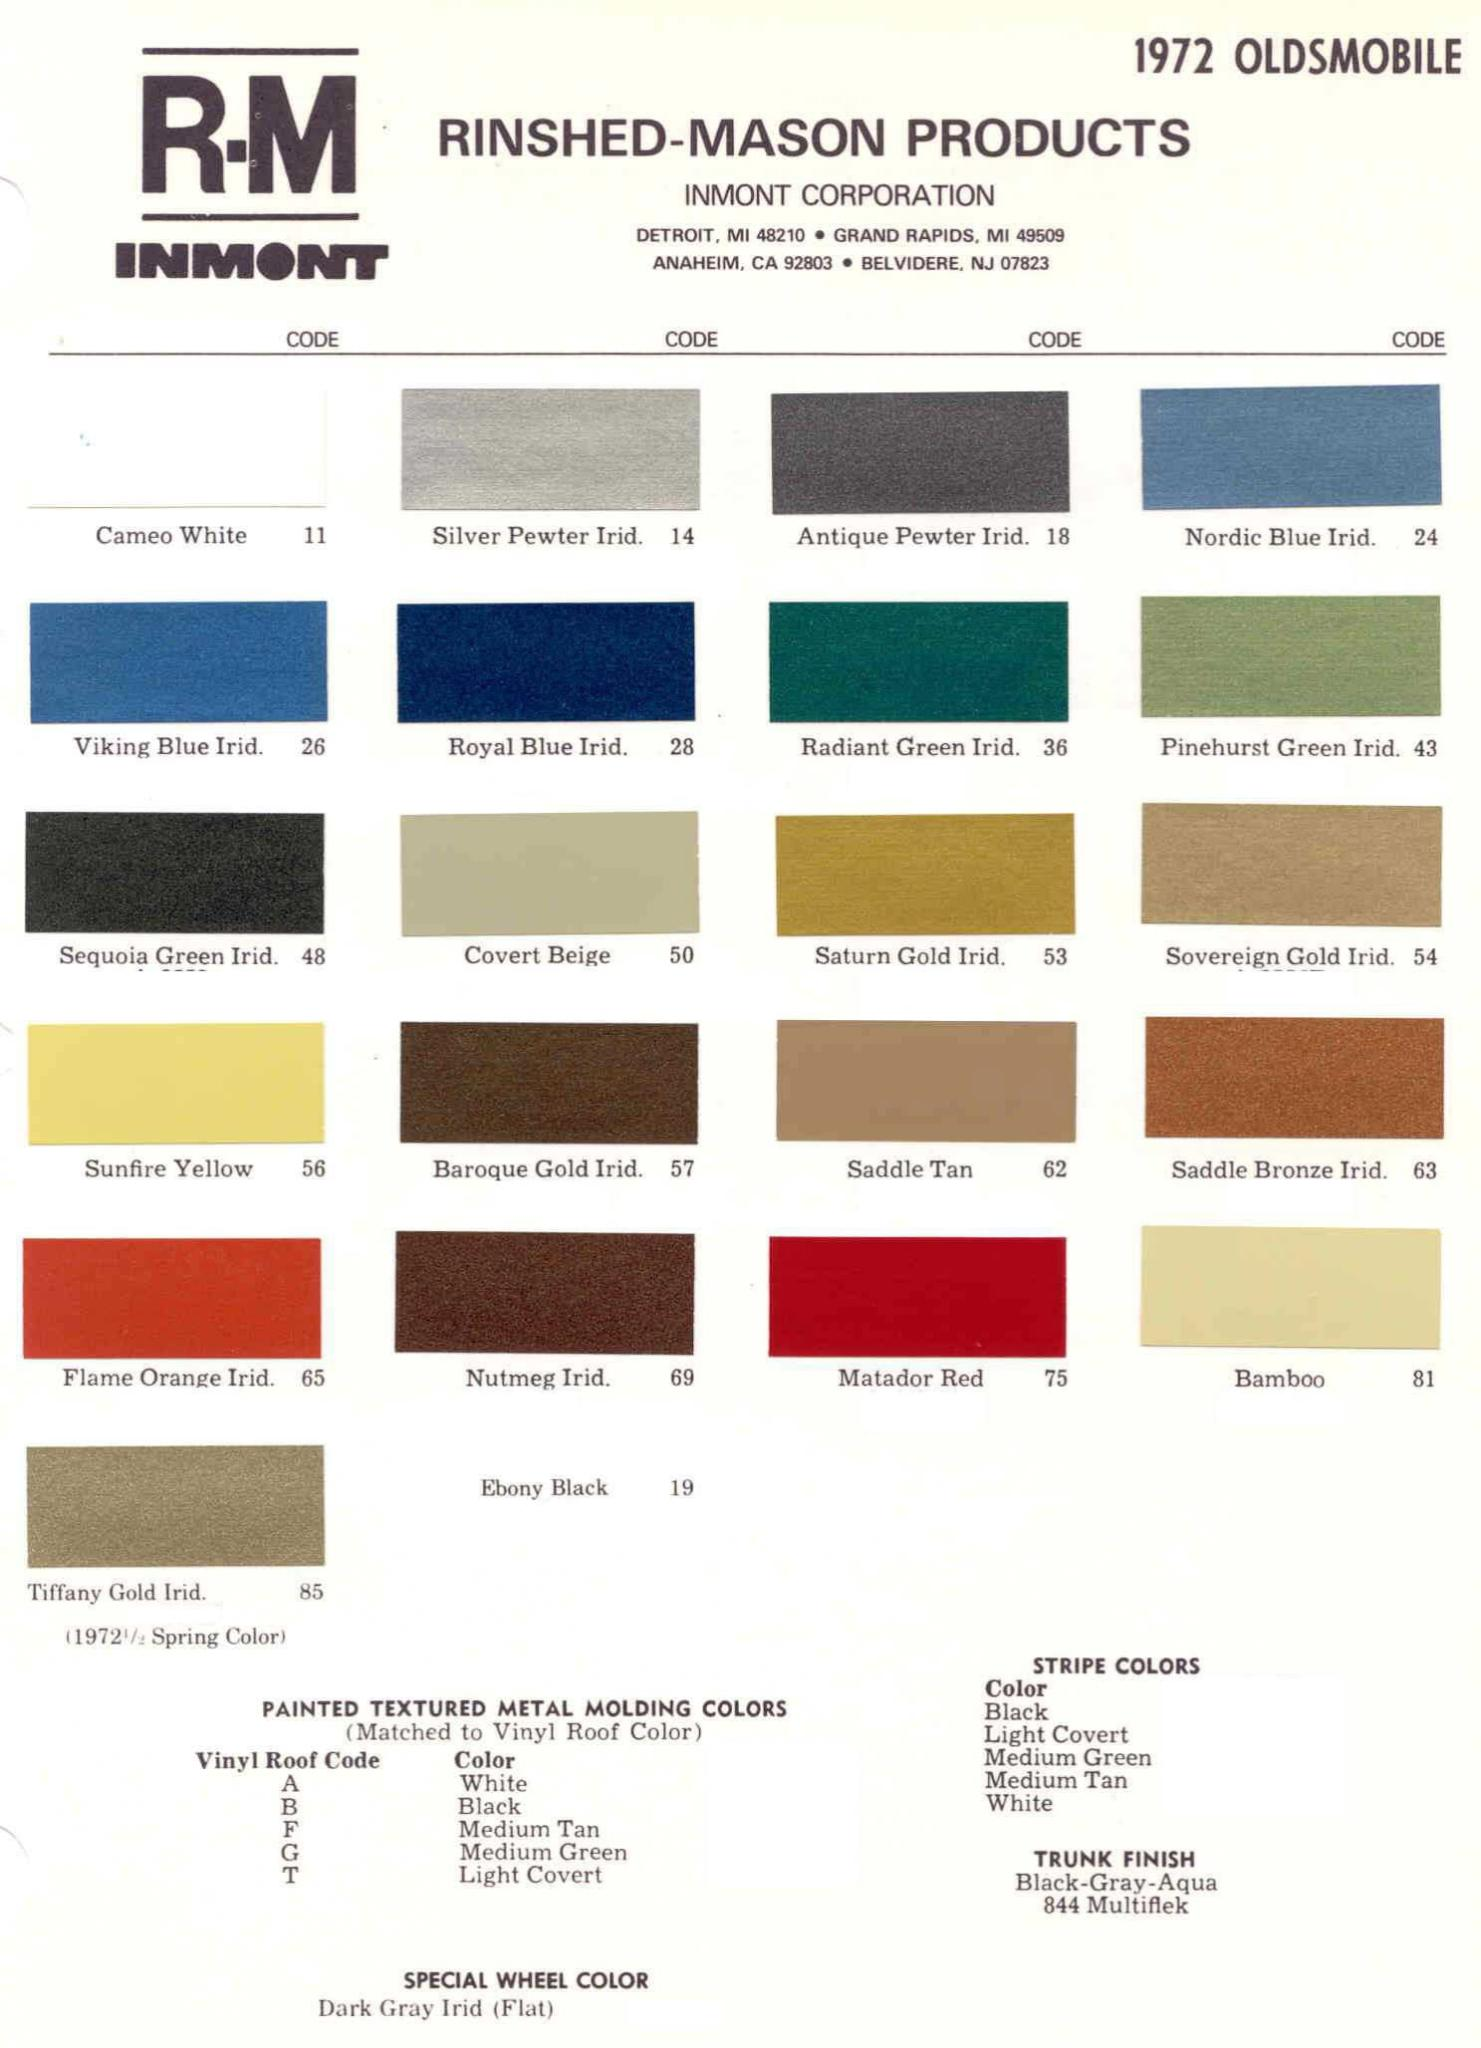 Oldsmobile Paint & Color Code Chart